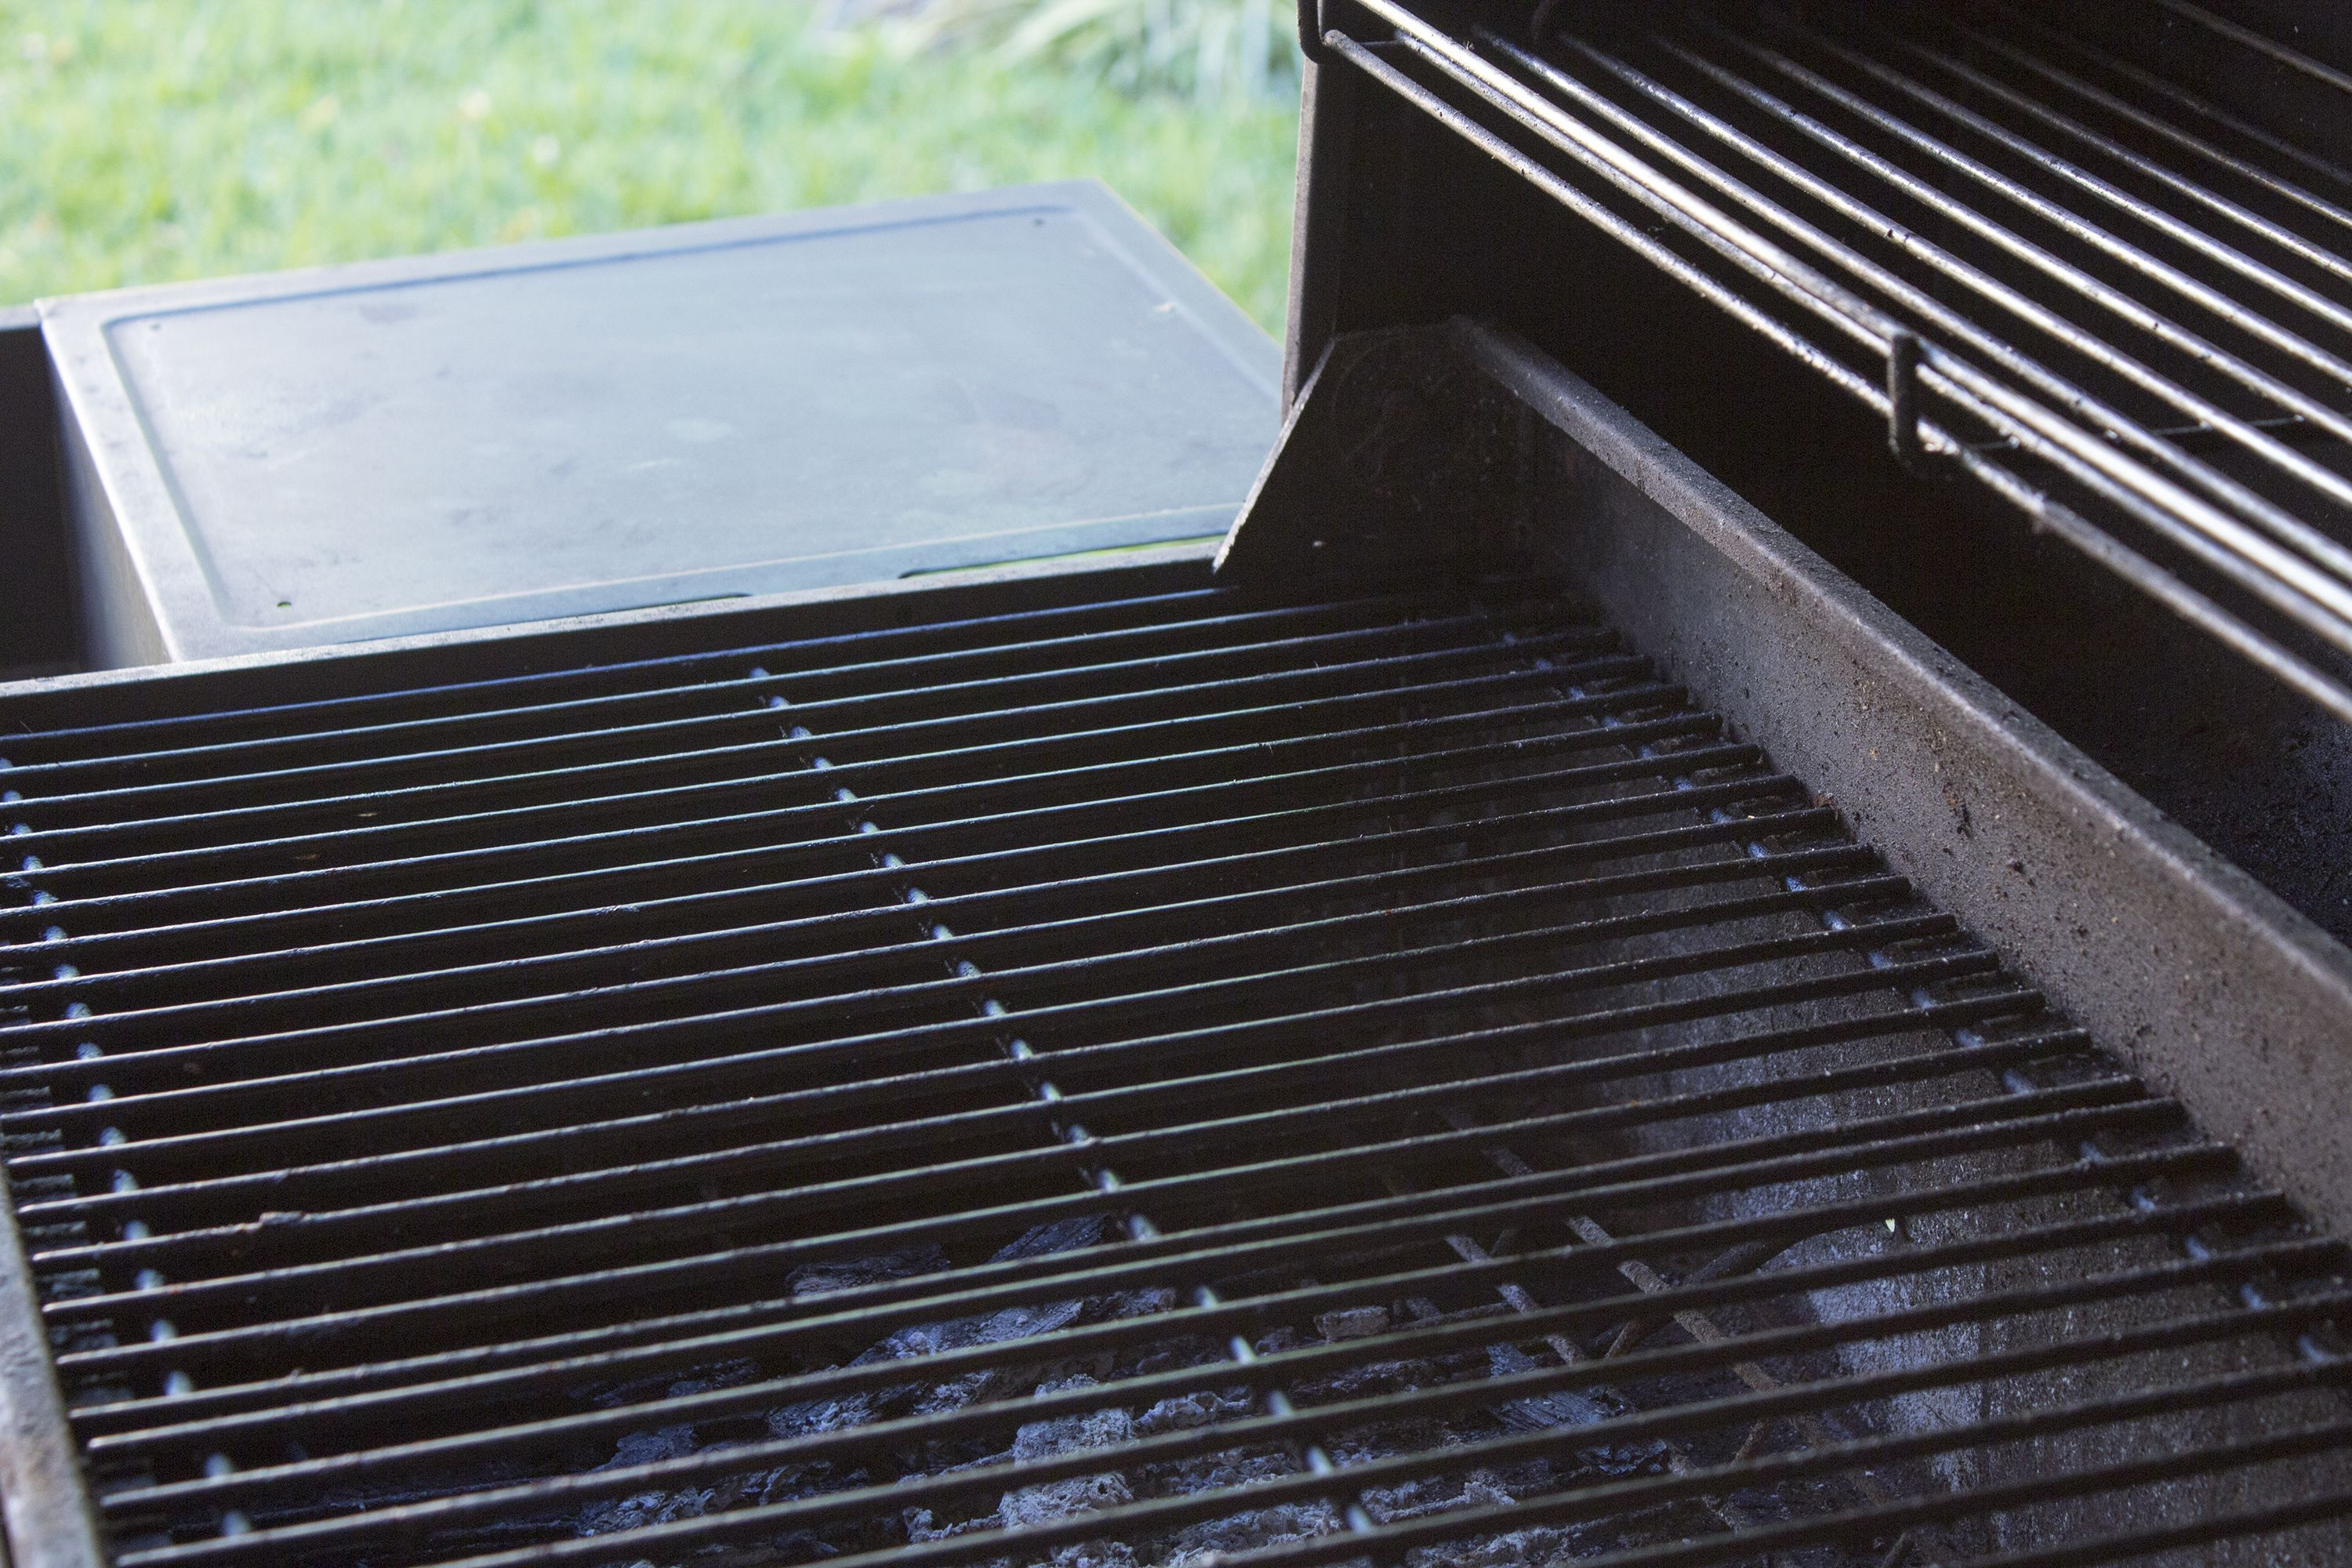 Cast Iron Grill Grates Used On Outdoor Gas Or Charcoal Grills Need Proper Seasoning And Regular